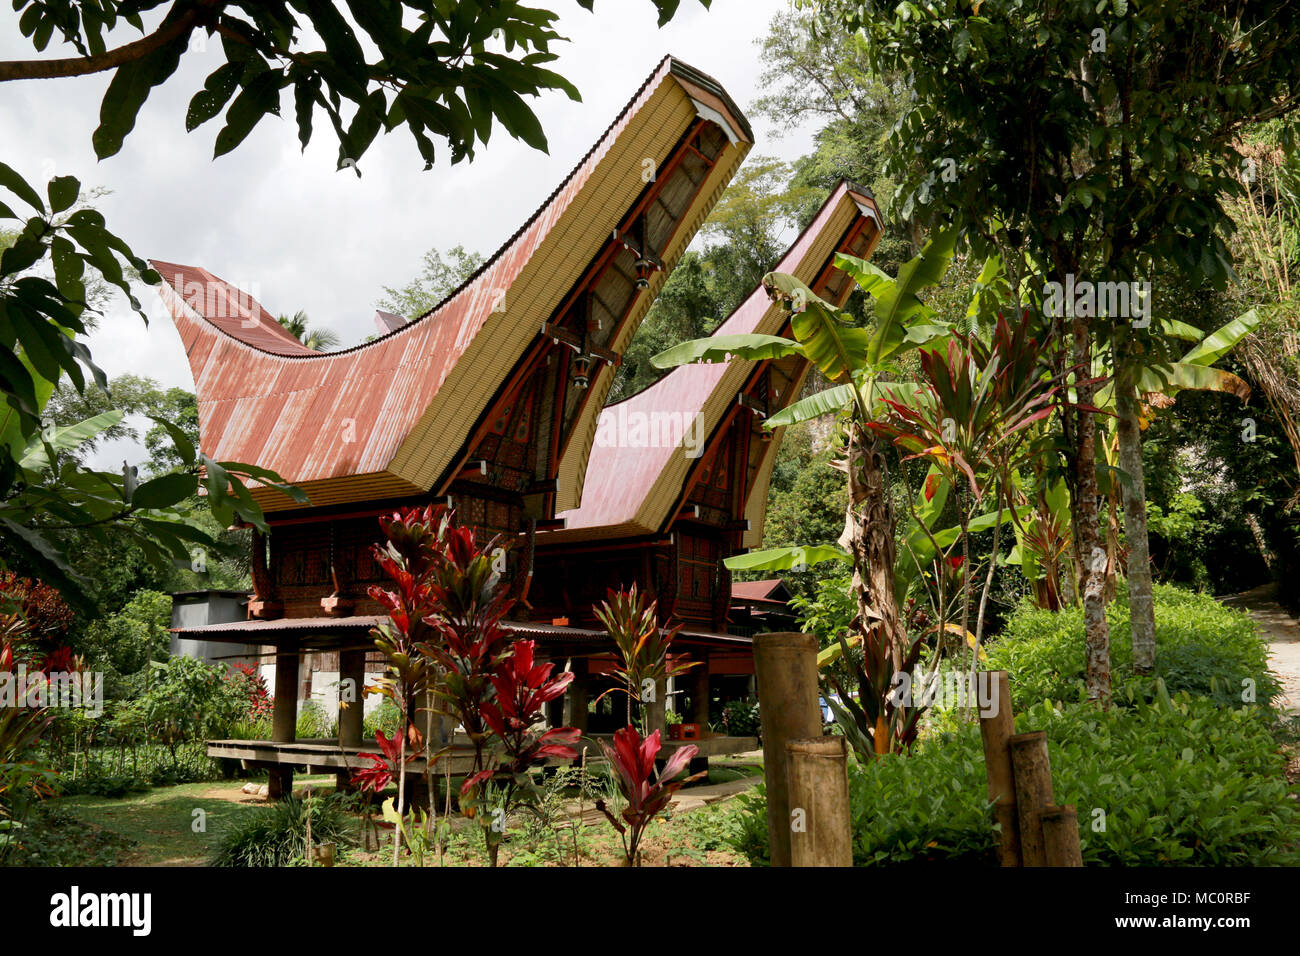 Tongkonans, traditional Toraja houses with massive peaked-roofs, in a Village near Ke'te' Ke'su, Toraja, Sulawesi, Indonesia - Stock Image